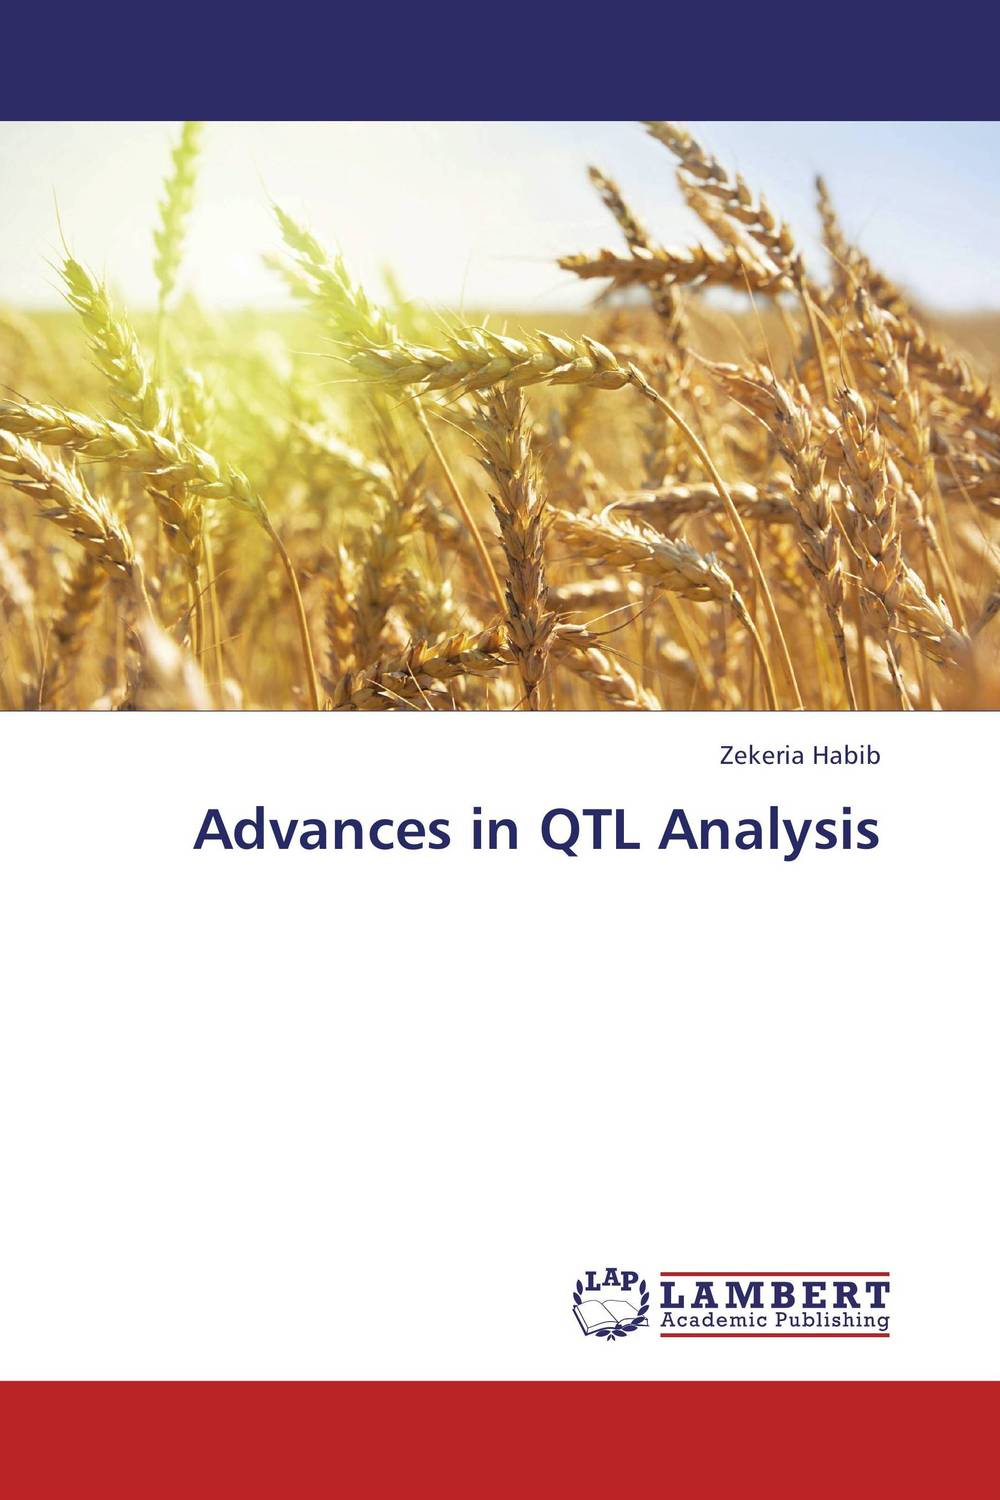 Advances in QTL Analysis